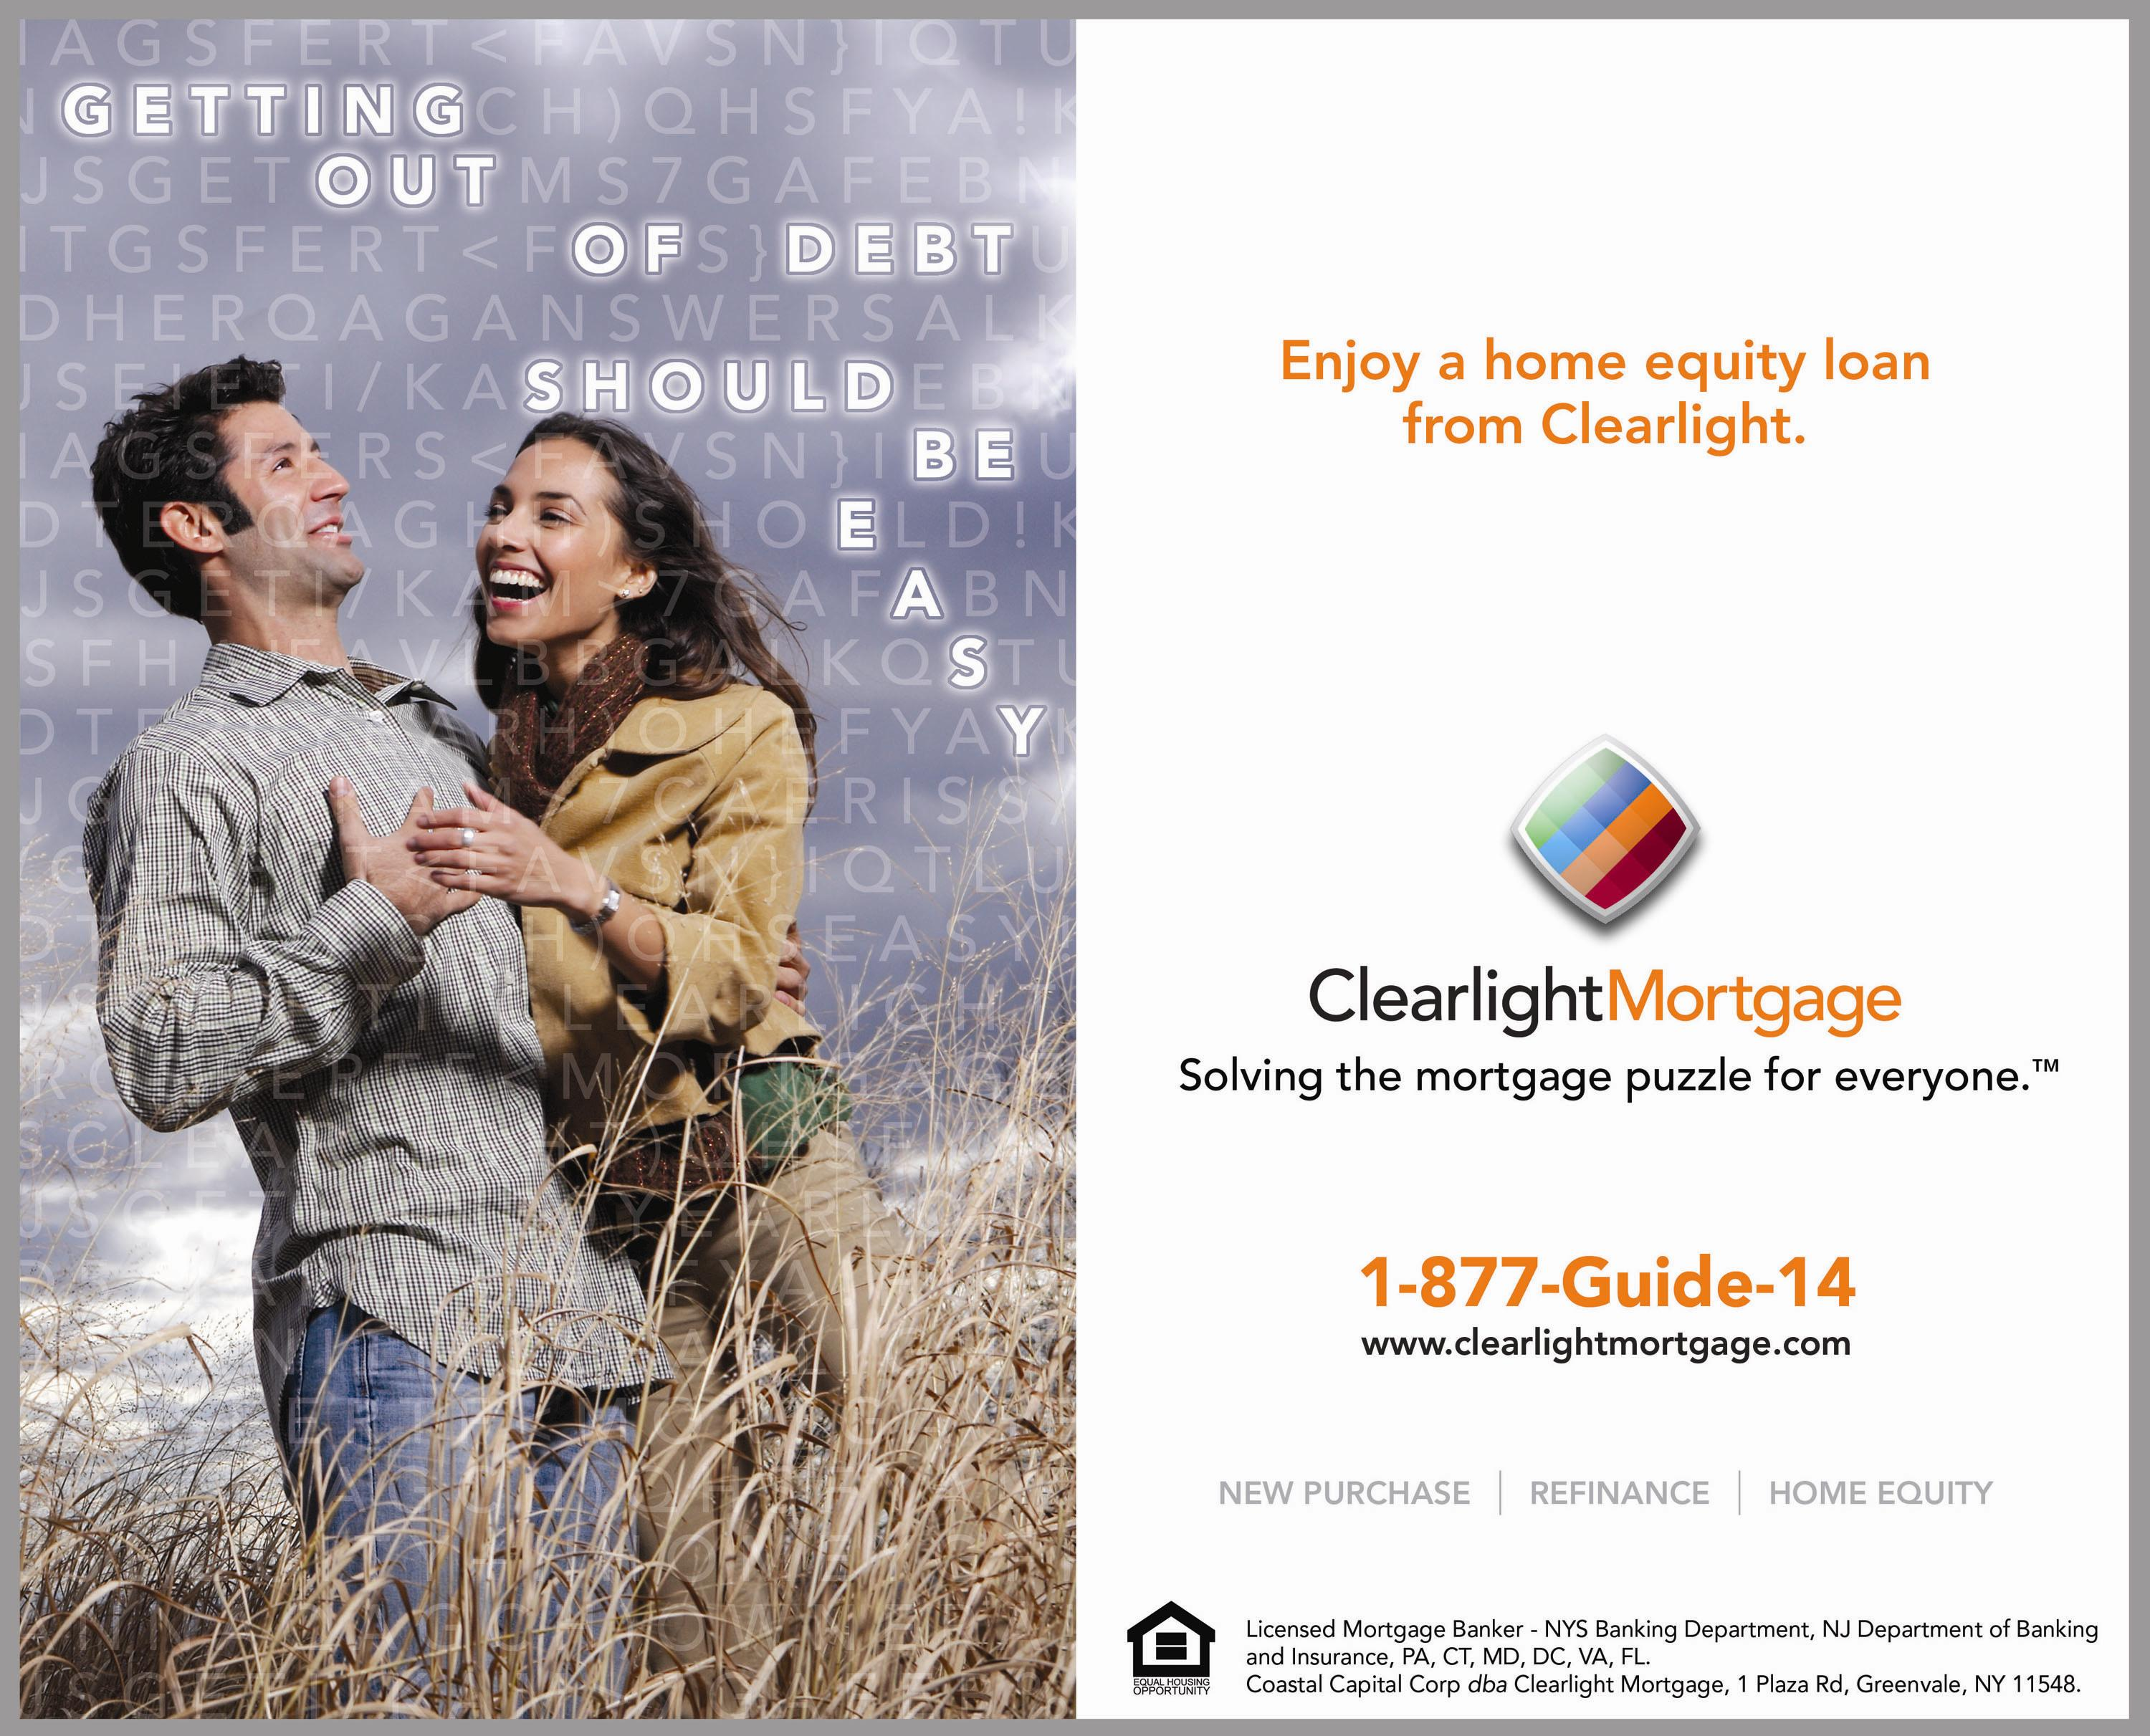 Clearlight Mortgage